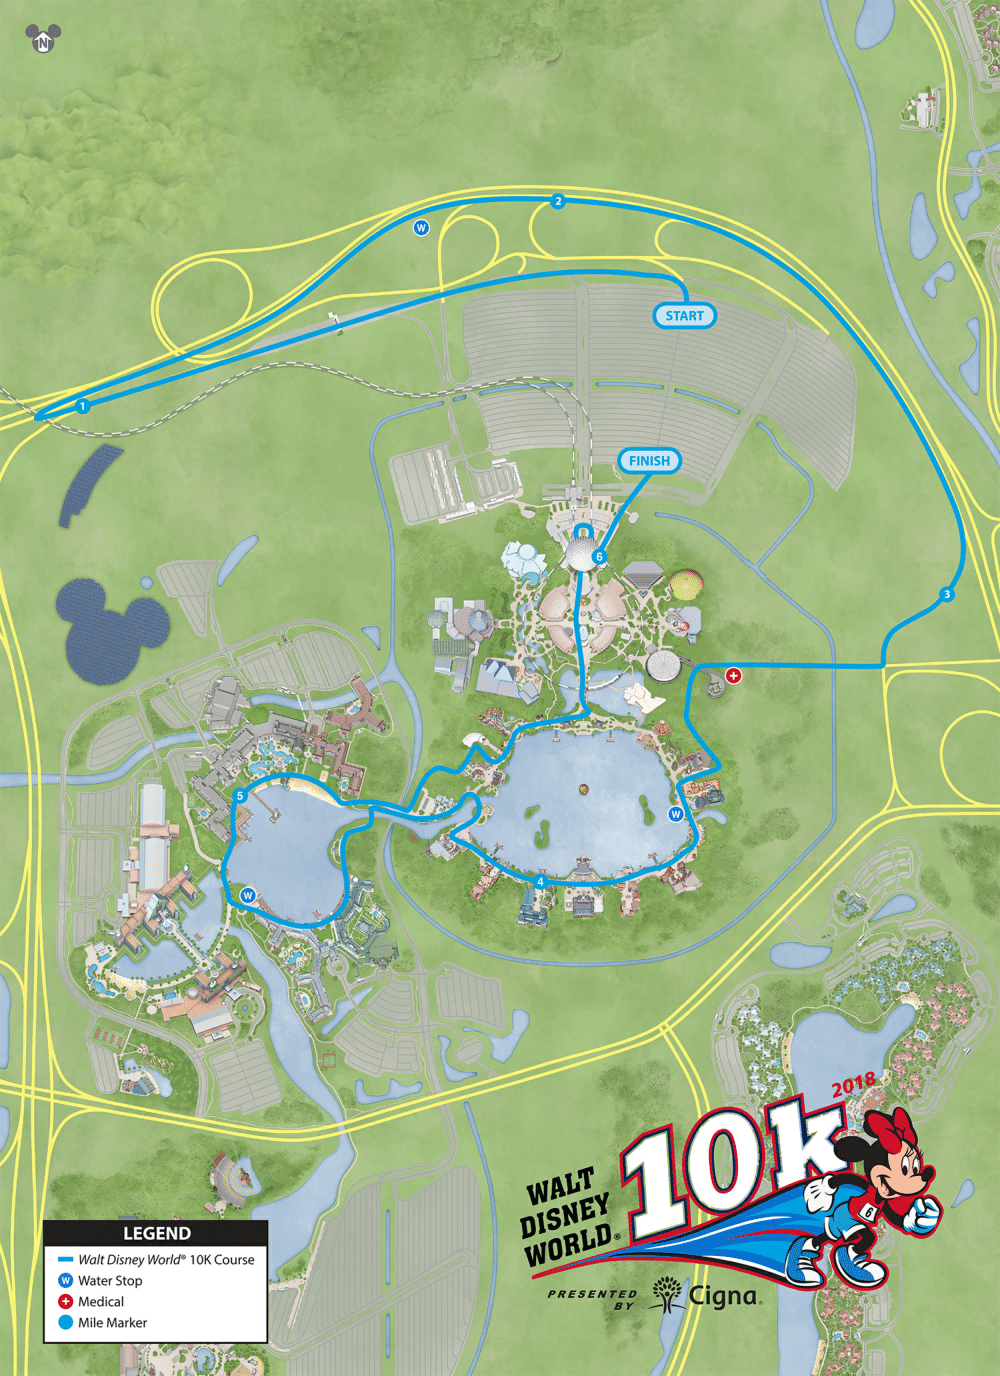 wdw_18_10k_course_map_final.cb01530686b7-1.png